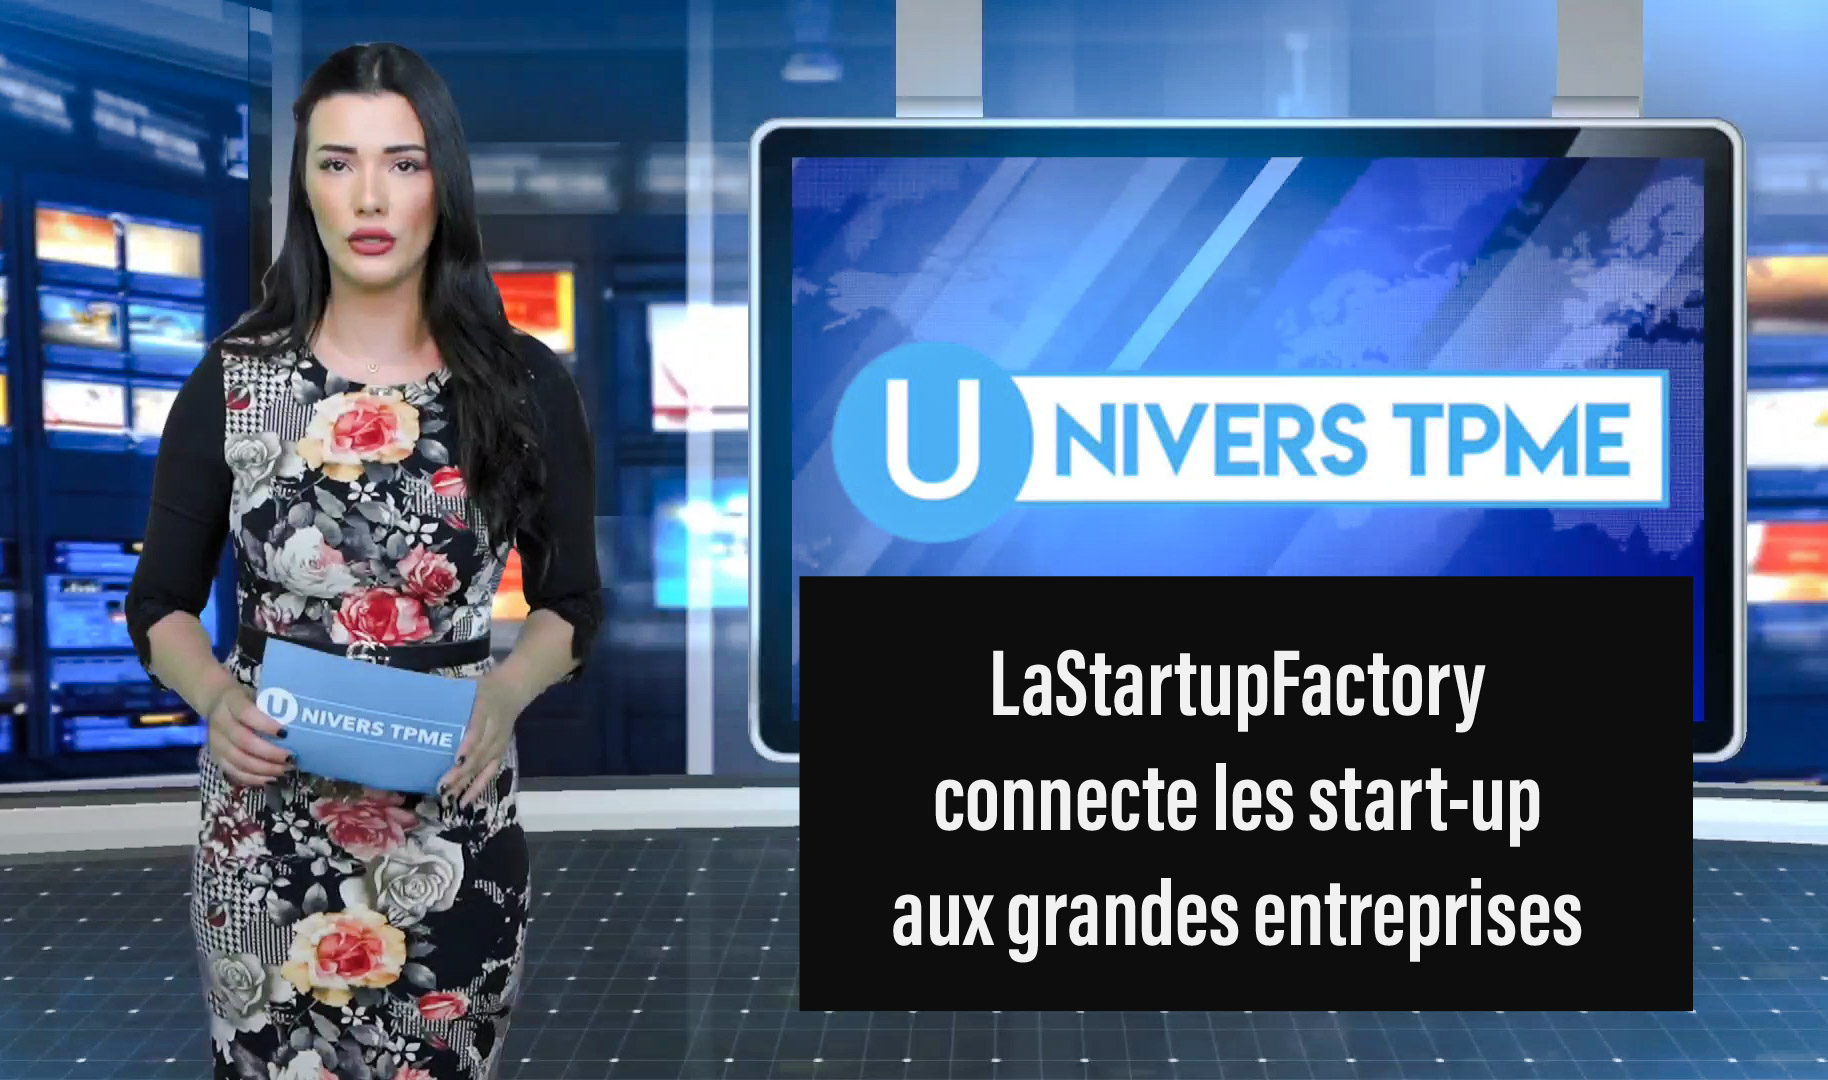 Univers TPME / Innovation : LaStartupFactory connecte les start-up aux grandes entreprises